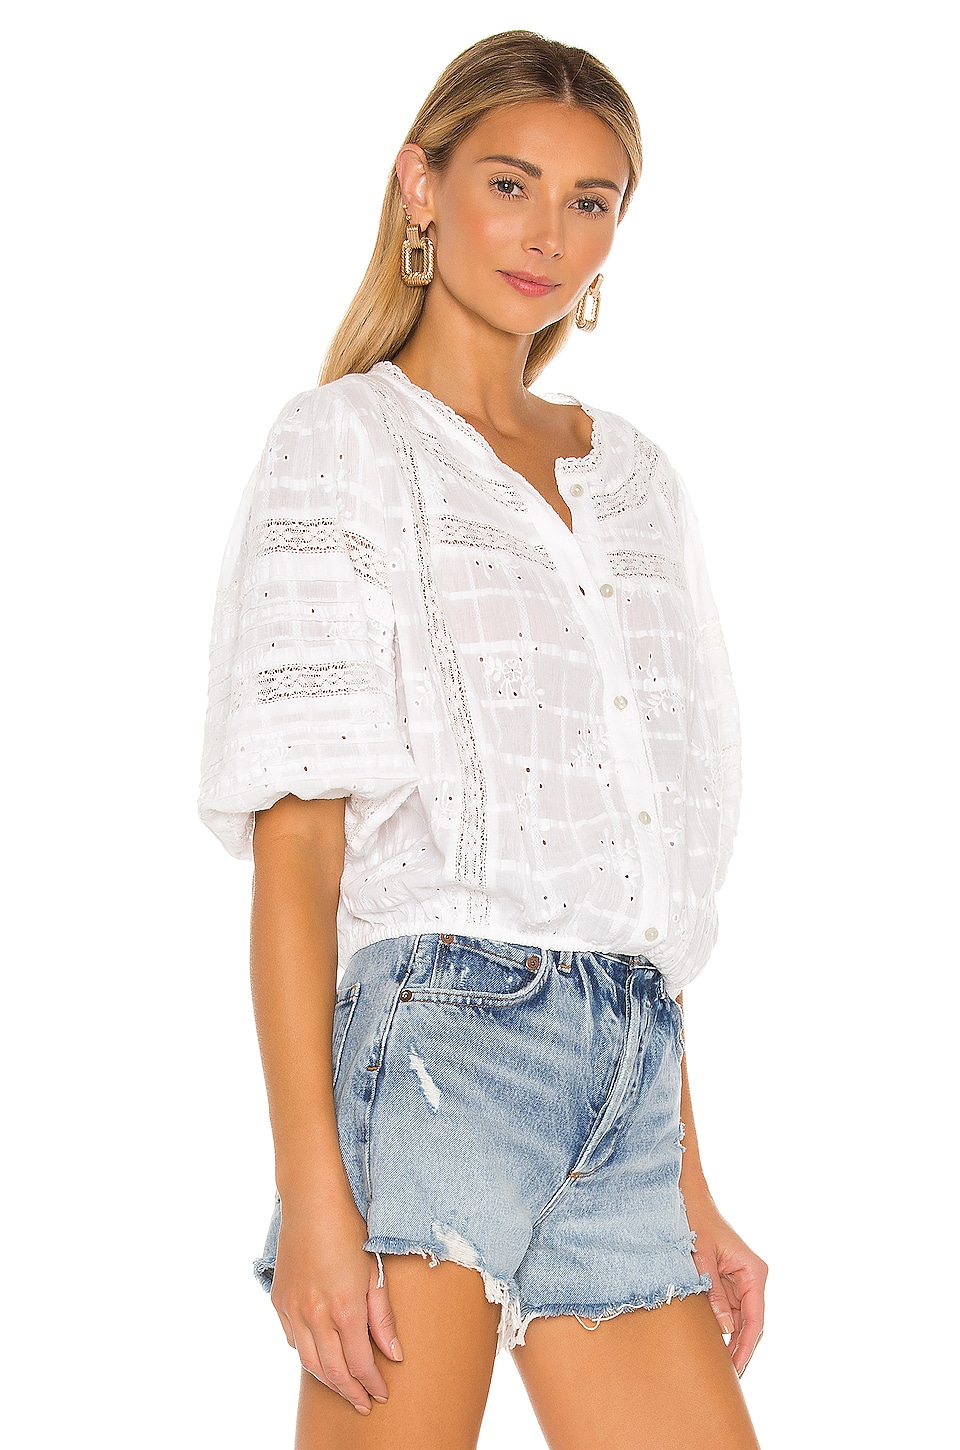 Country Lane Heirloom Blouse, view 2, click to view large image.